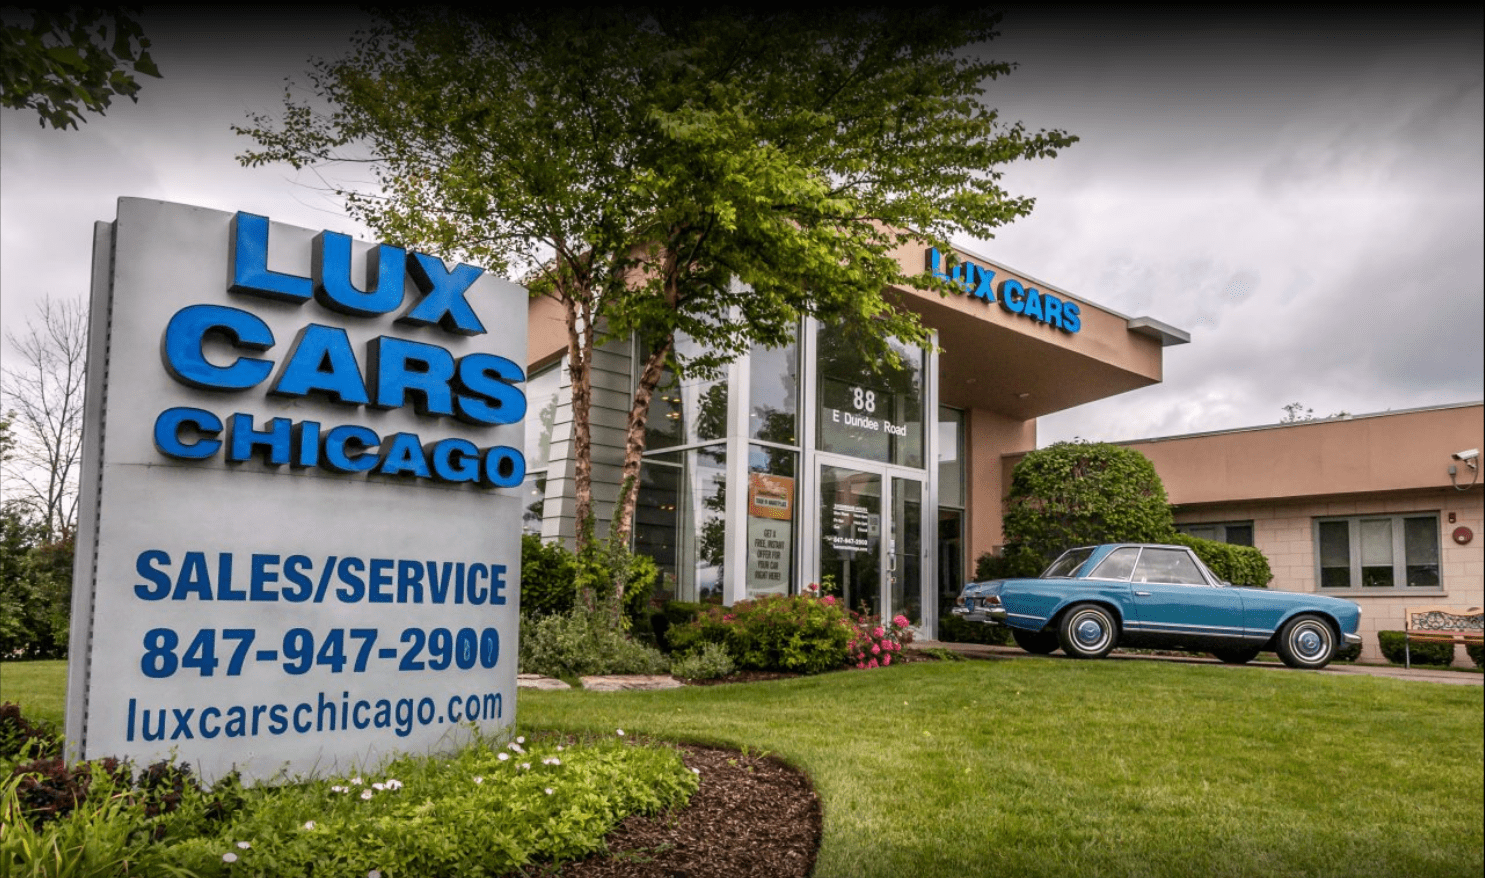 Lux Cars Chicago